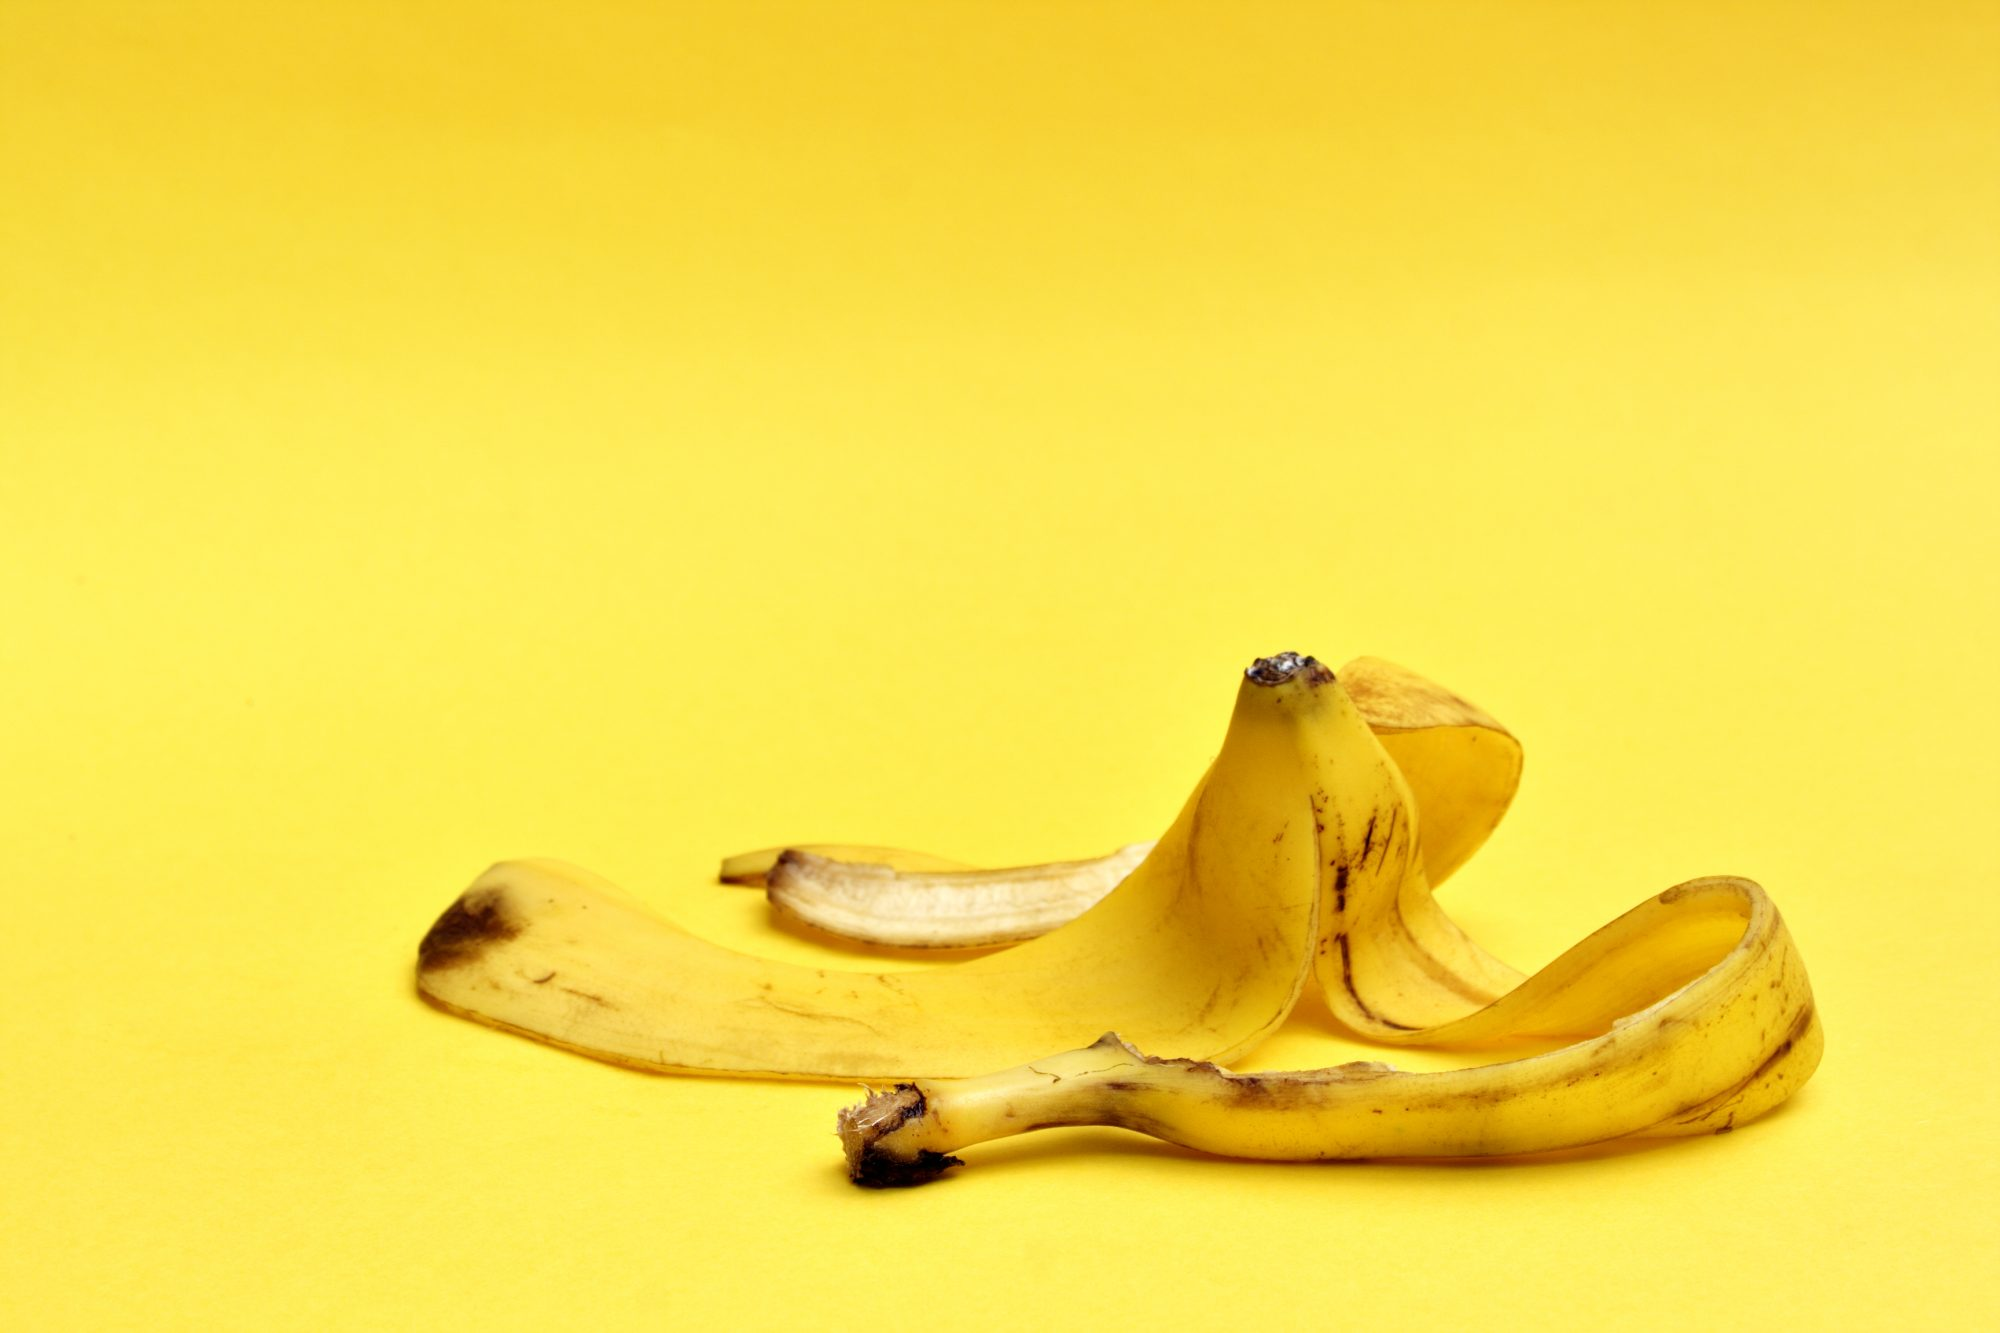 The Pros and Cons of Baking with Banana Peels